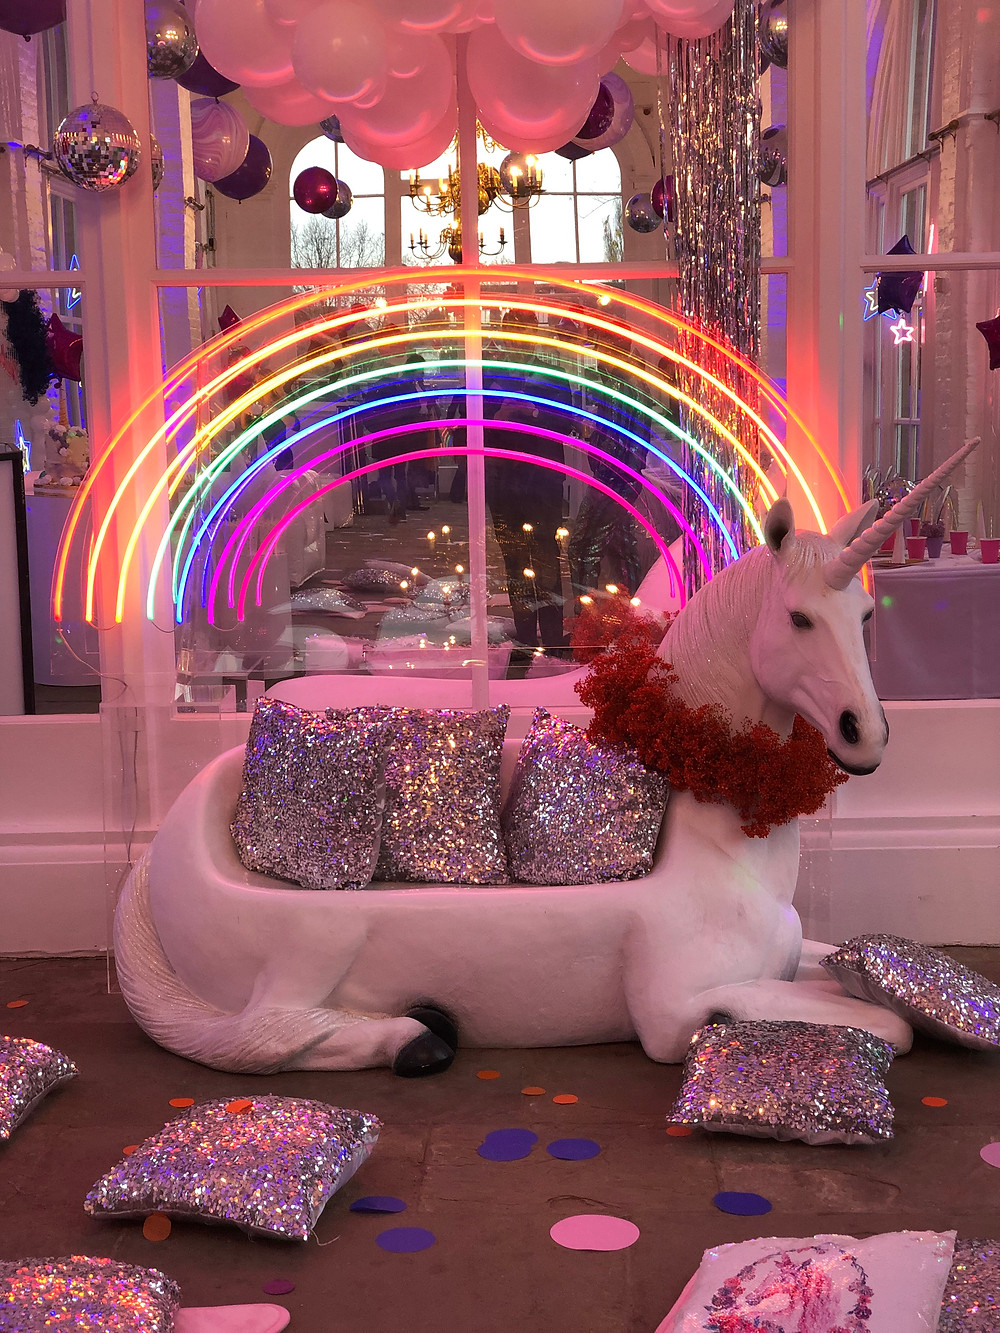 Unicorn bench for unicorn themed party at The Orangery in Holland Park